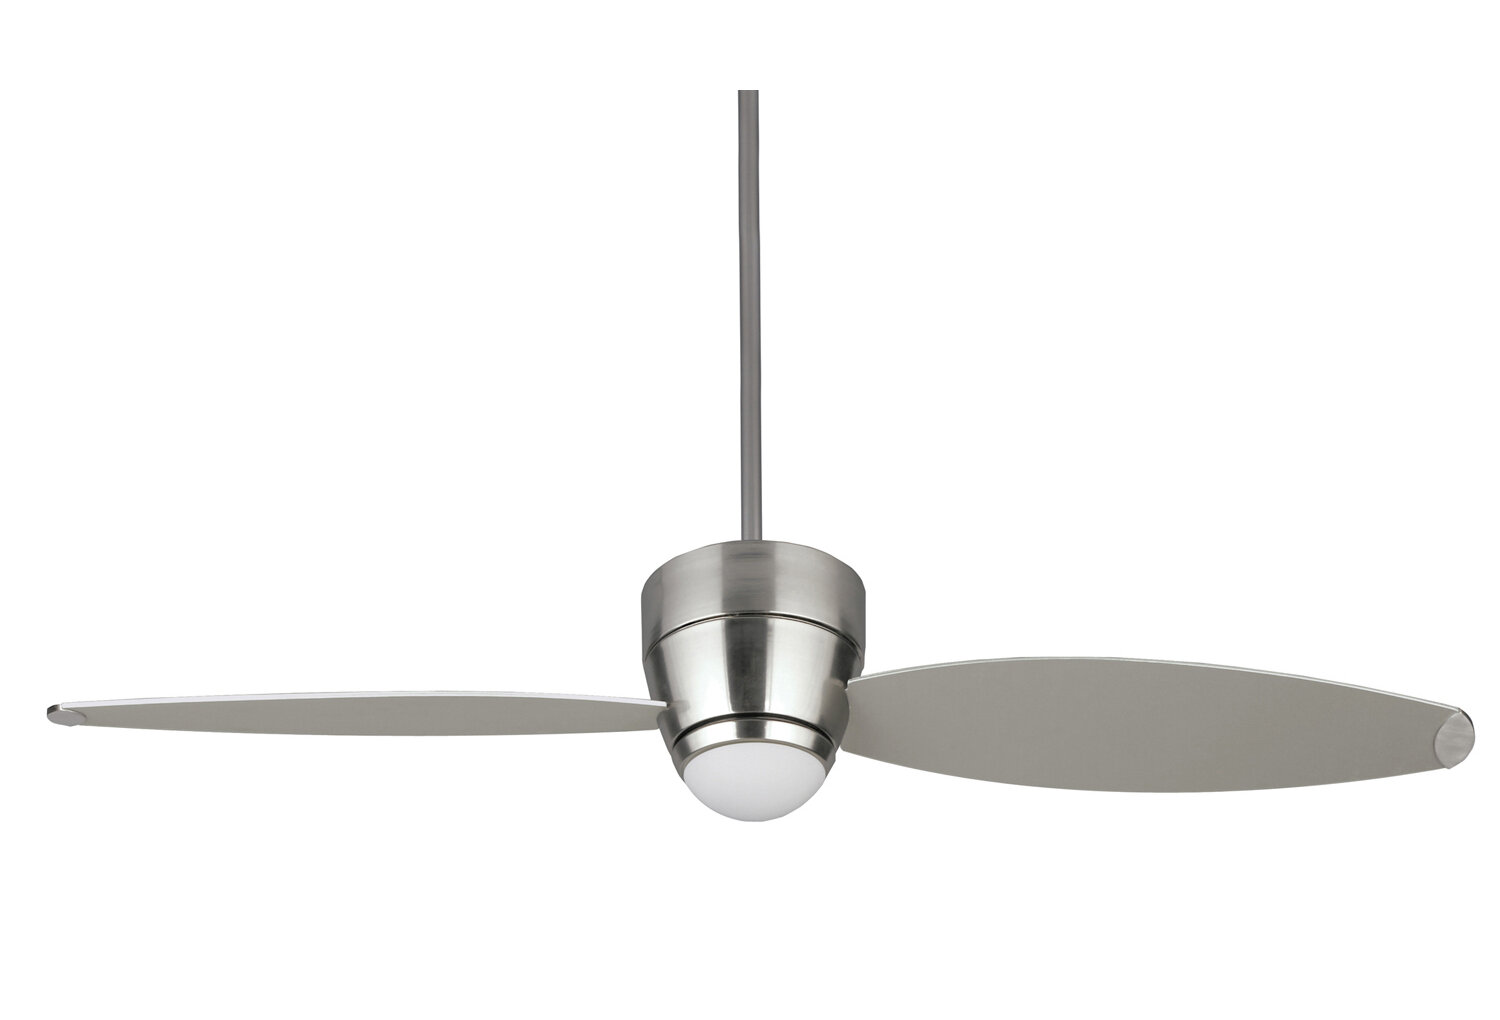 Ivy Bronx 54 Michalski 2 Blade Outdoor Standard Ceiling Fan With Remote Control And Light Kit Included Wayfair